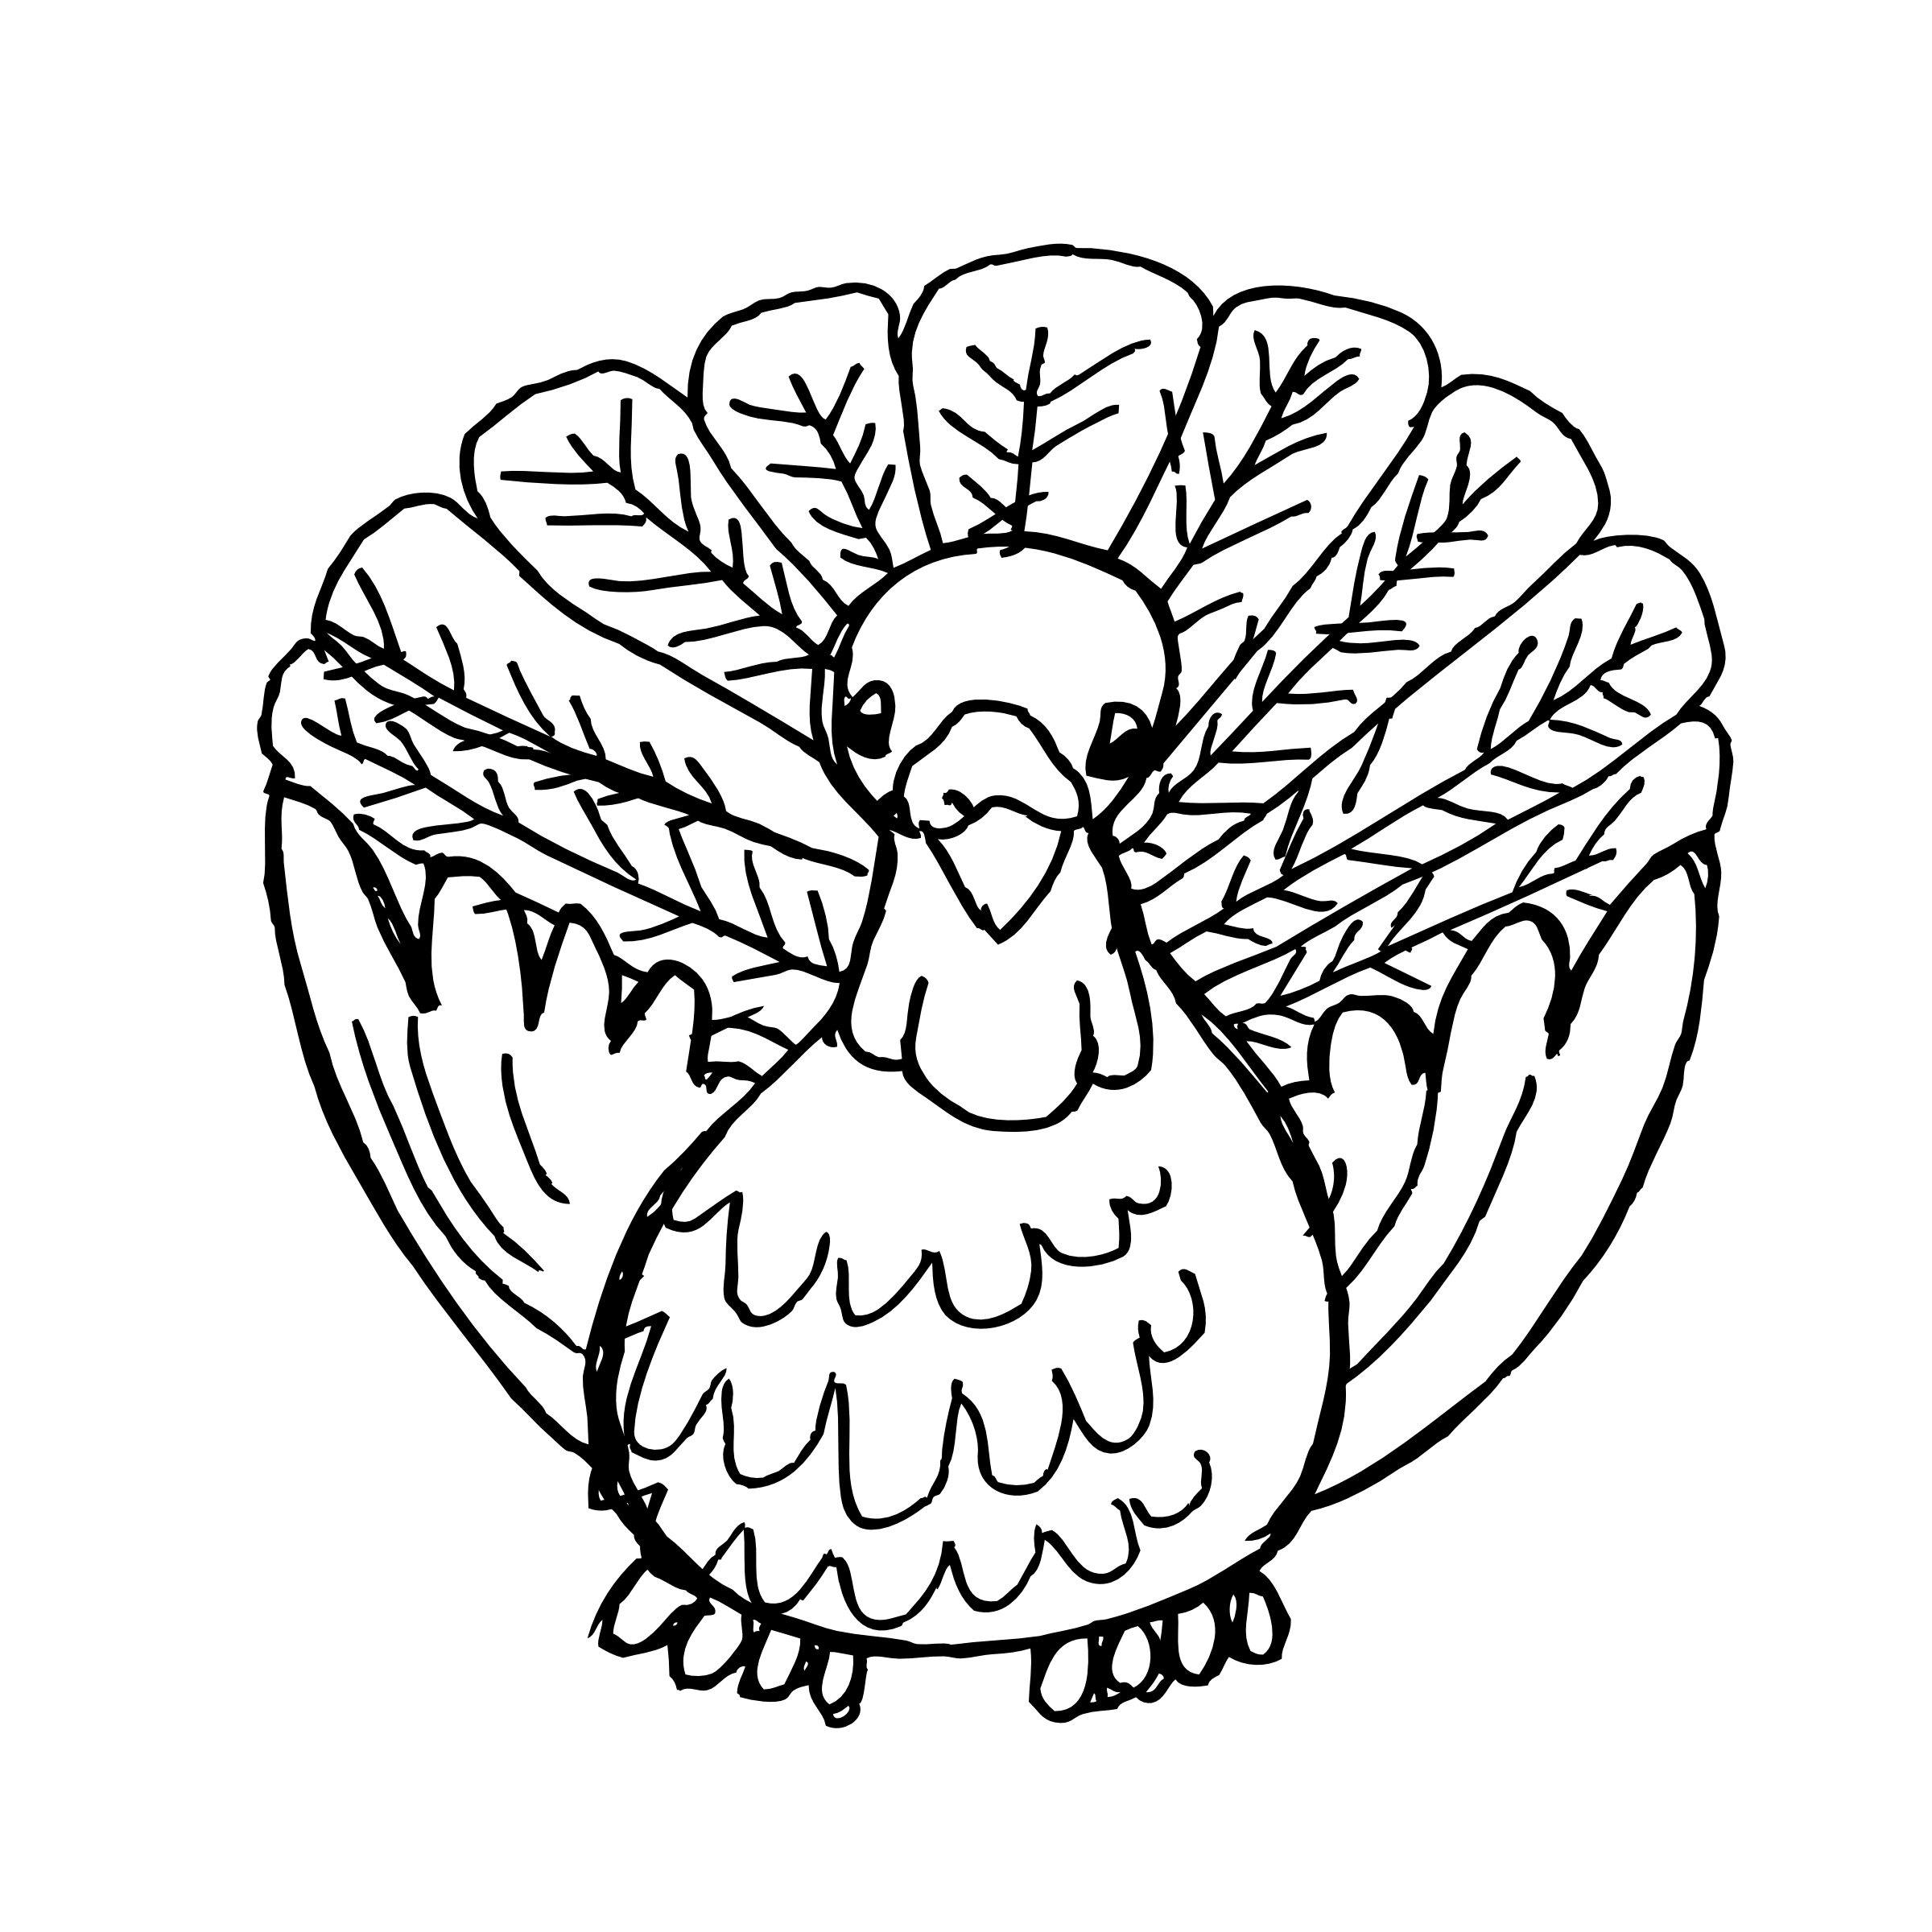 Turkey black and white clipart picture freeuse Turkey Feather Clipart Black And White | Clipart Panda - Free ... picture freeuse